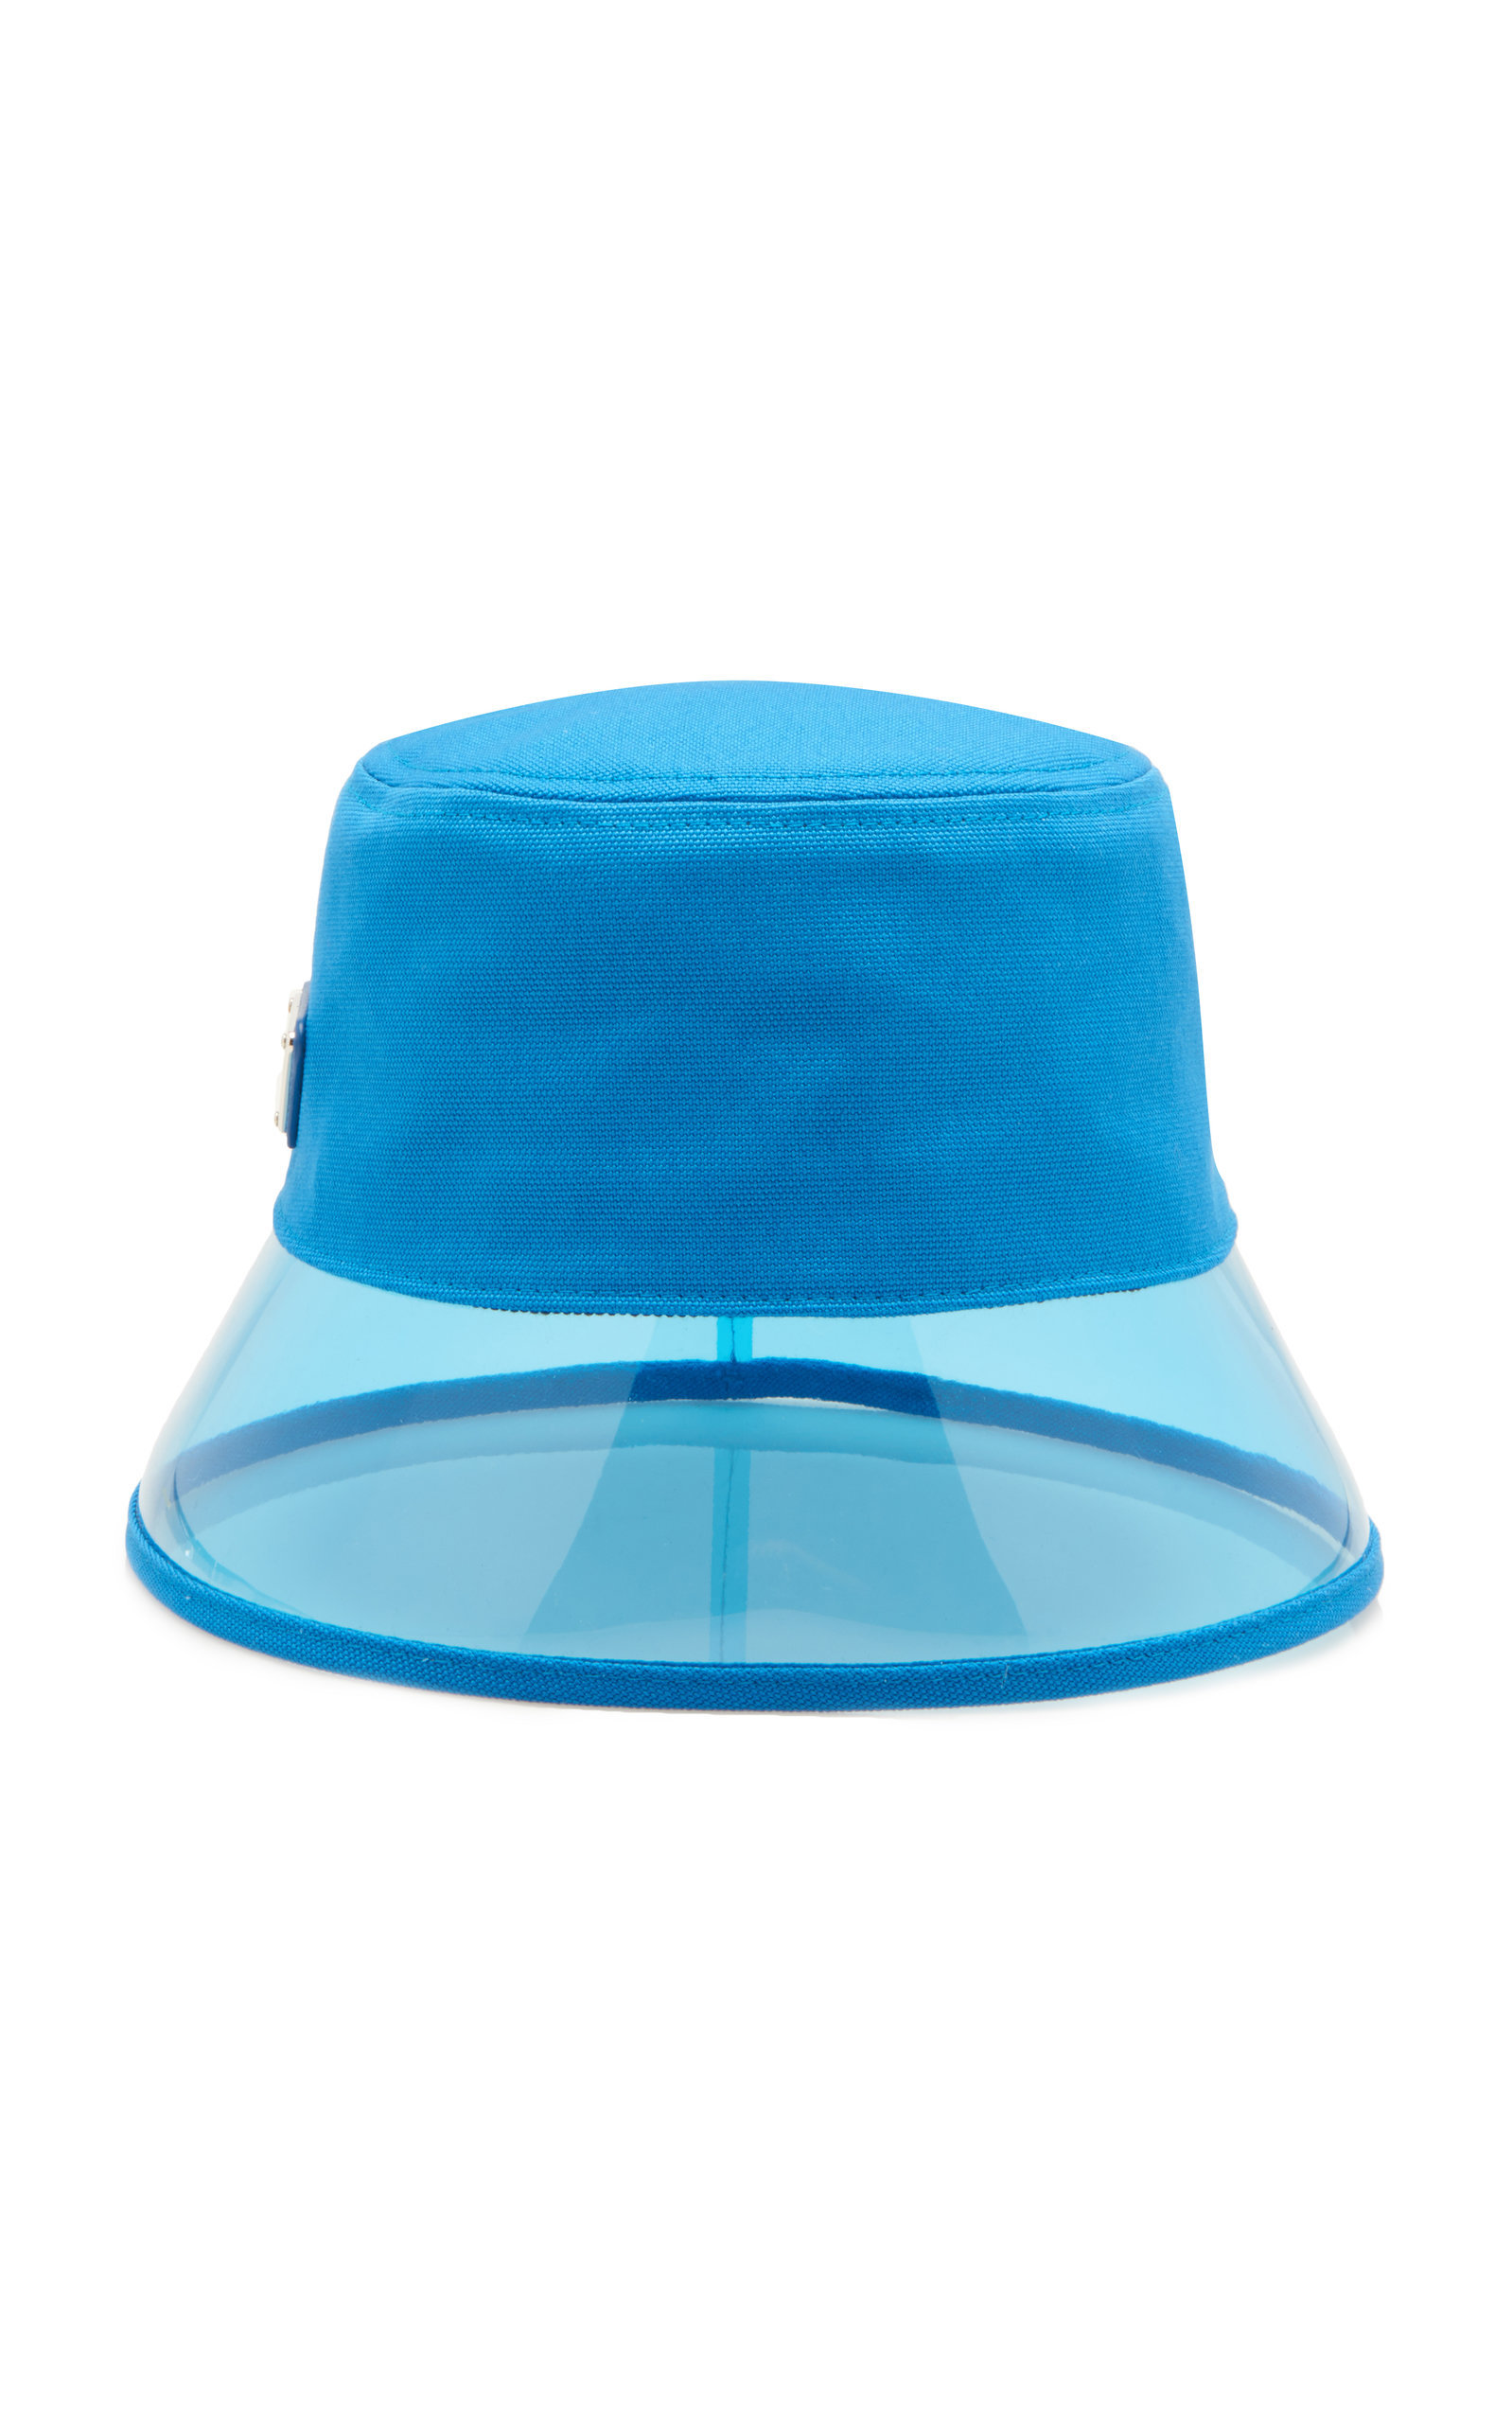 72d0a29ba07 Prada Pvc And Shell Bucket Hat In Blue